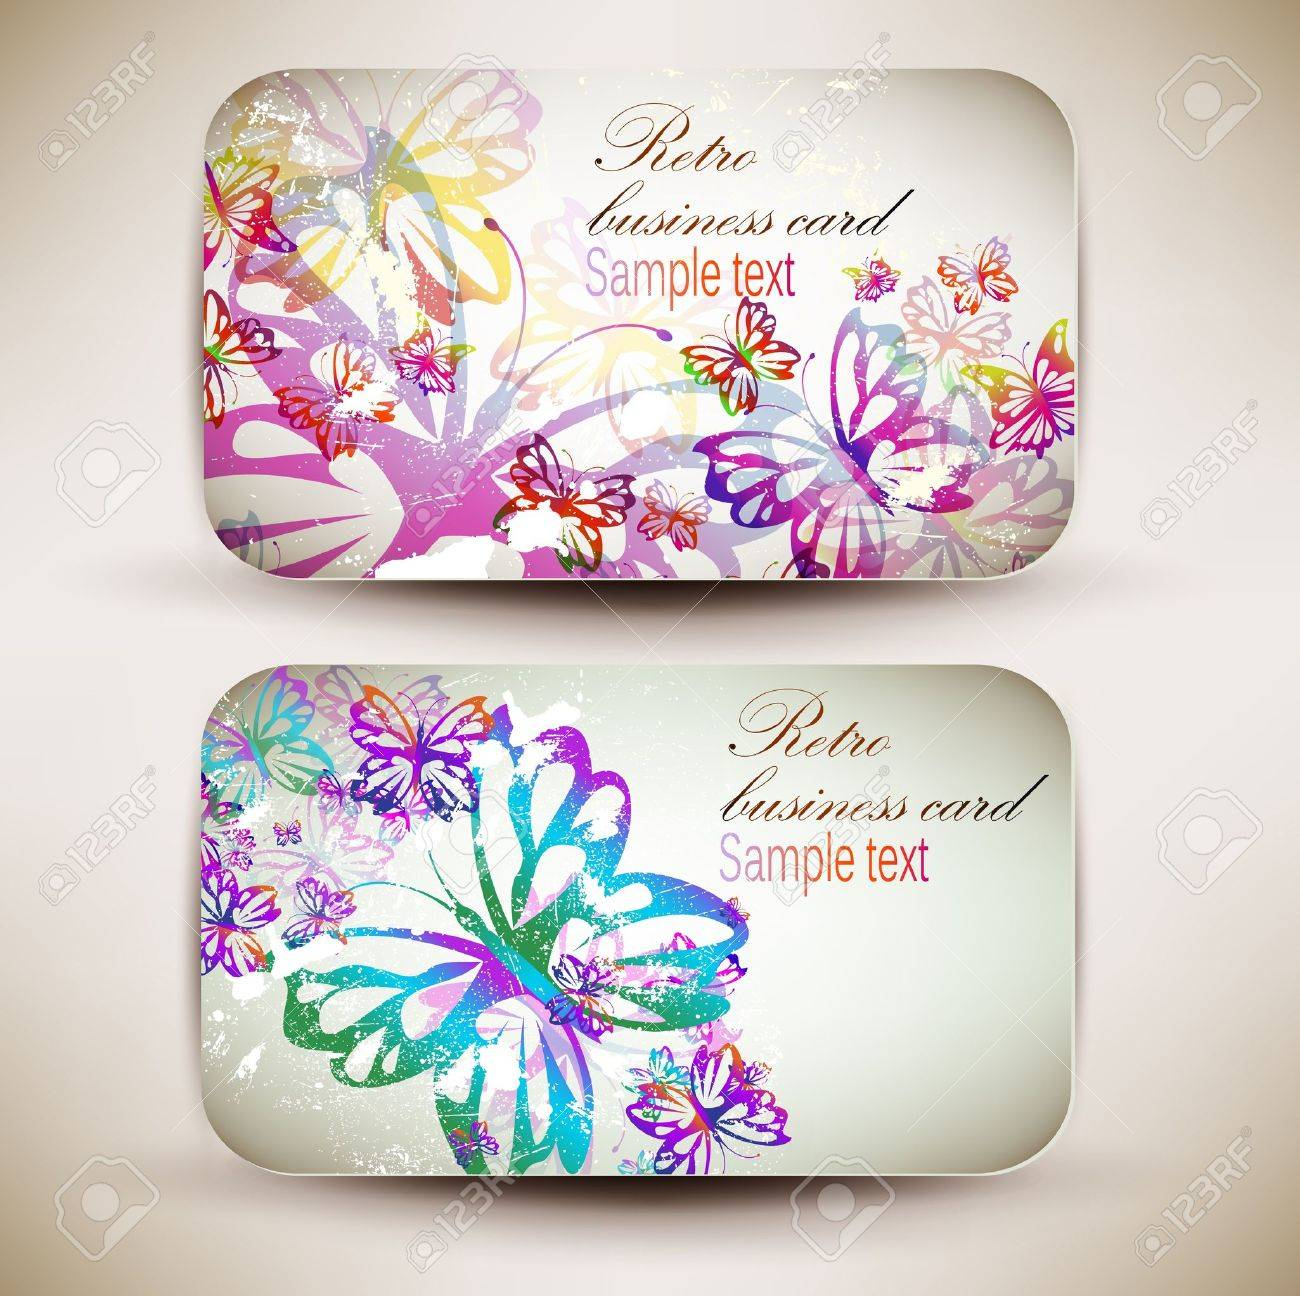 Vintage Business-Card Set With Butterfly Designed In The Same ...